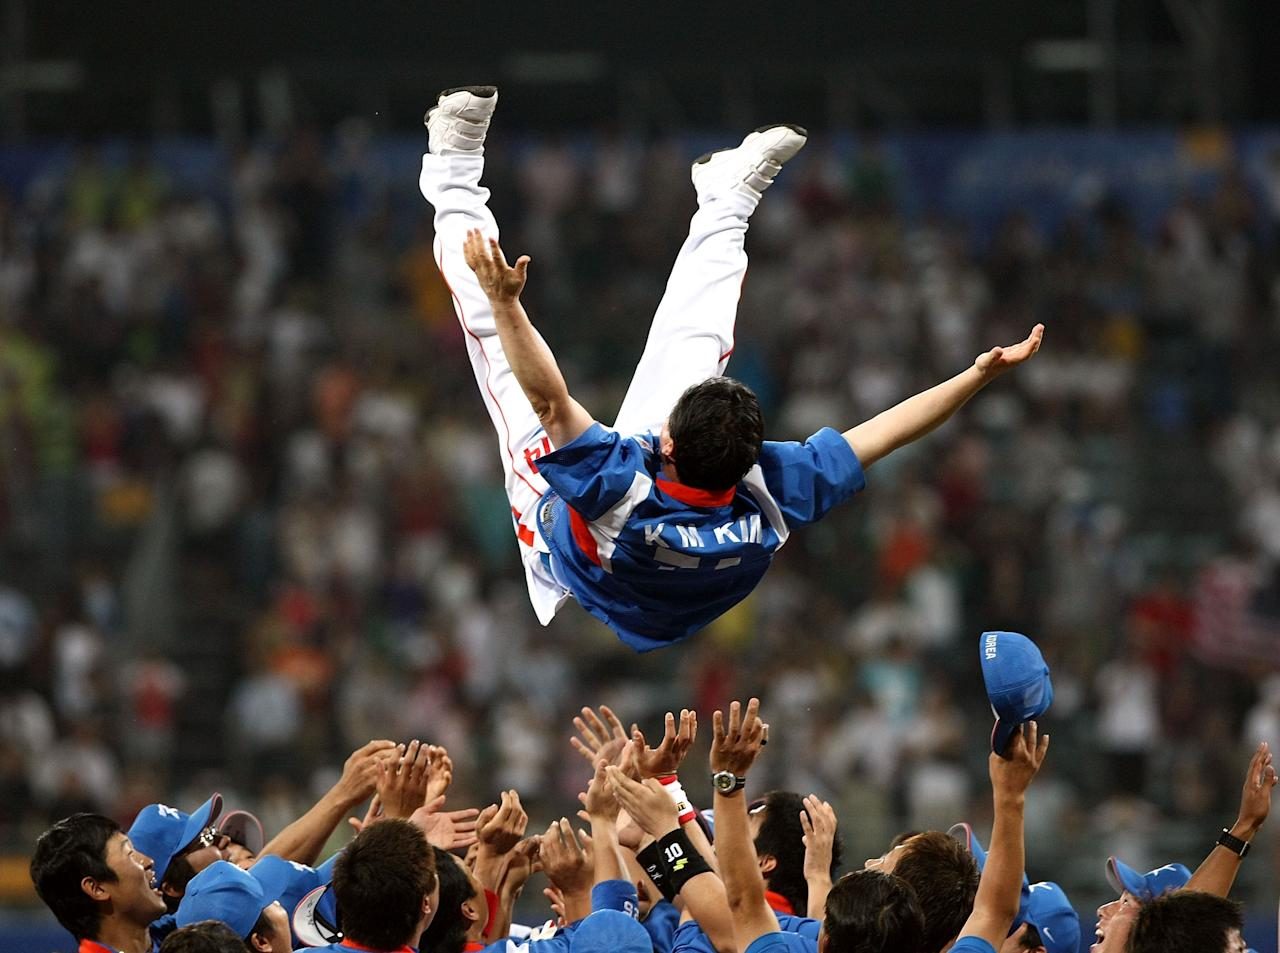 BEIJING - AUGUST 23:  Manager Kim Kyungmoon #74 of Korea is tossed in the air by his players after Korea won 3-2 against Cuba during the men's gold medal baseball game held at Wukesong Baseball Field on Day 15 of the Beijing 2008 Olympic Games on August 23, 2008 in Beijing, China.  (Photo by Jonathan Ferrey/Getty Images)